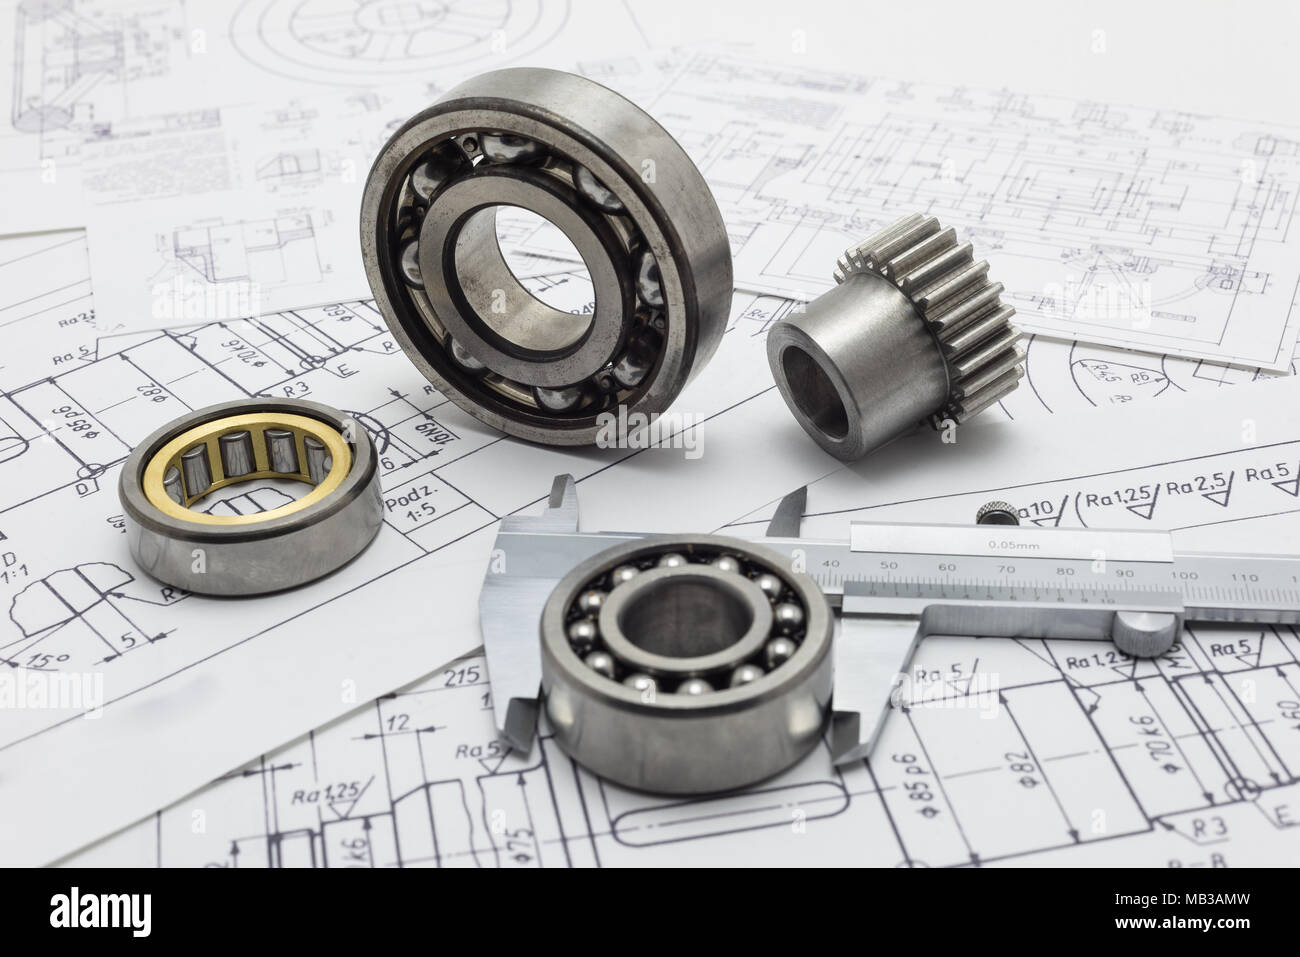 Mechanical scheme, caliper with bearing and small gear. - Stock Image